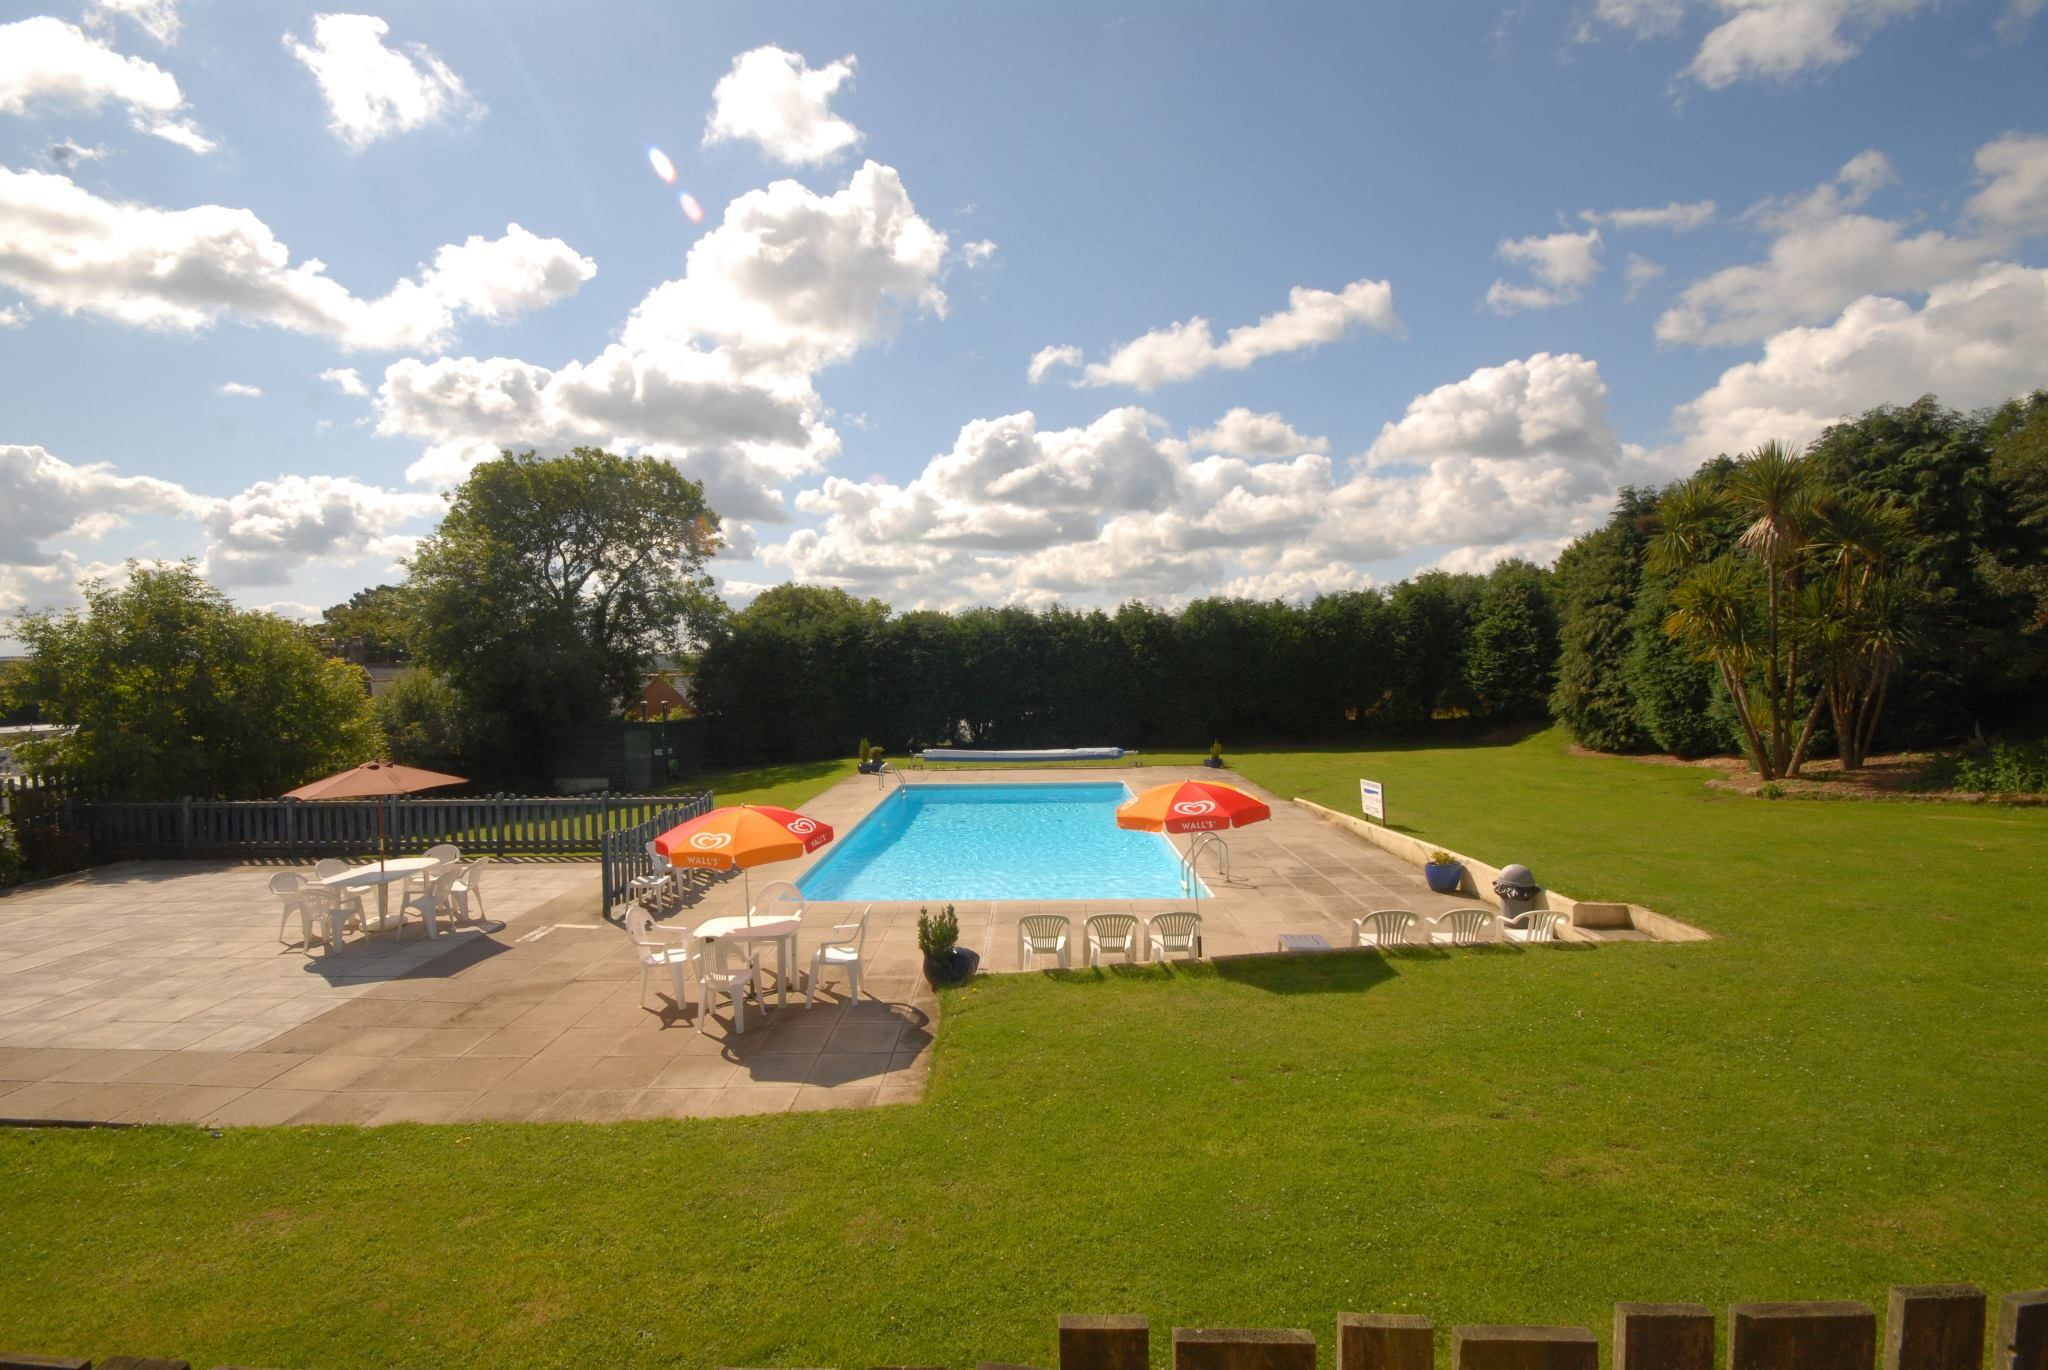 St Mabyn Holiday Park Wadebridge St Mabyn Cornwall England Campsite Camping Swimming Pool